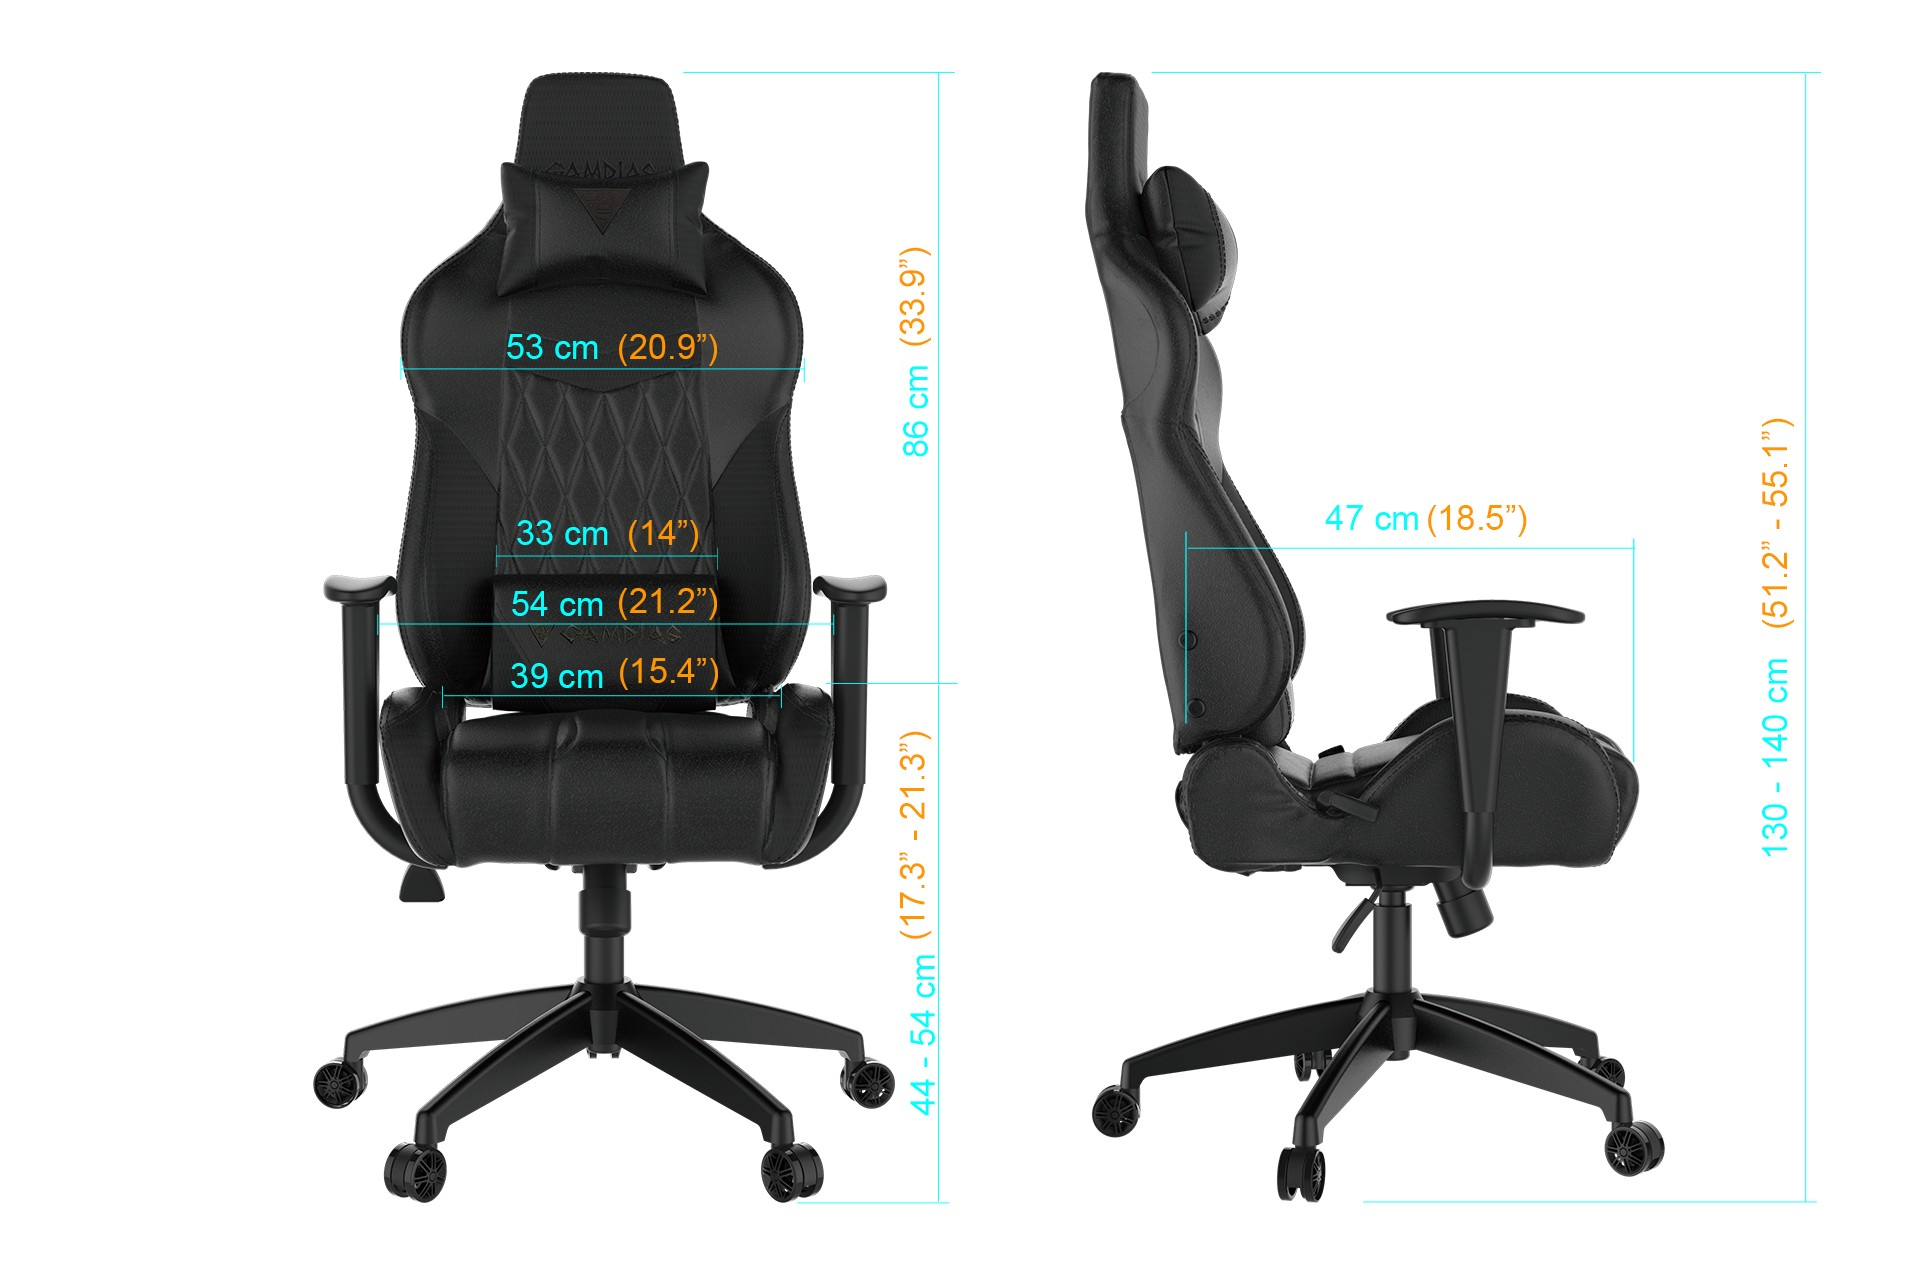 GAMING CHAIR GAMDIAS Achilles E2-L - (black/red)